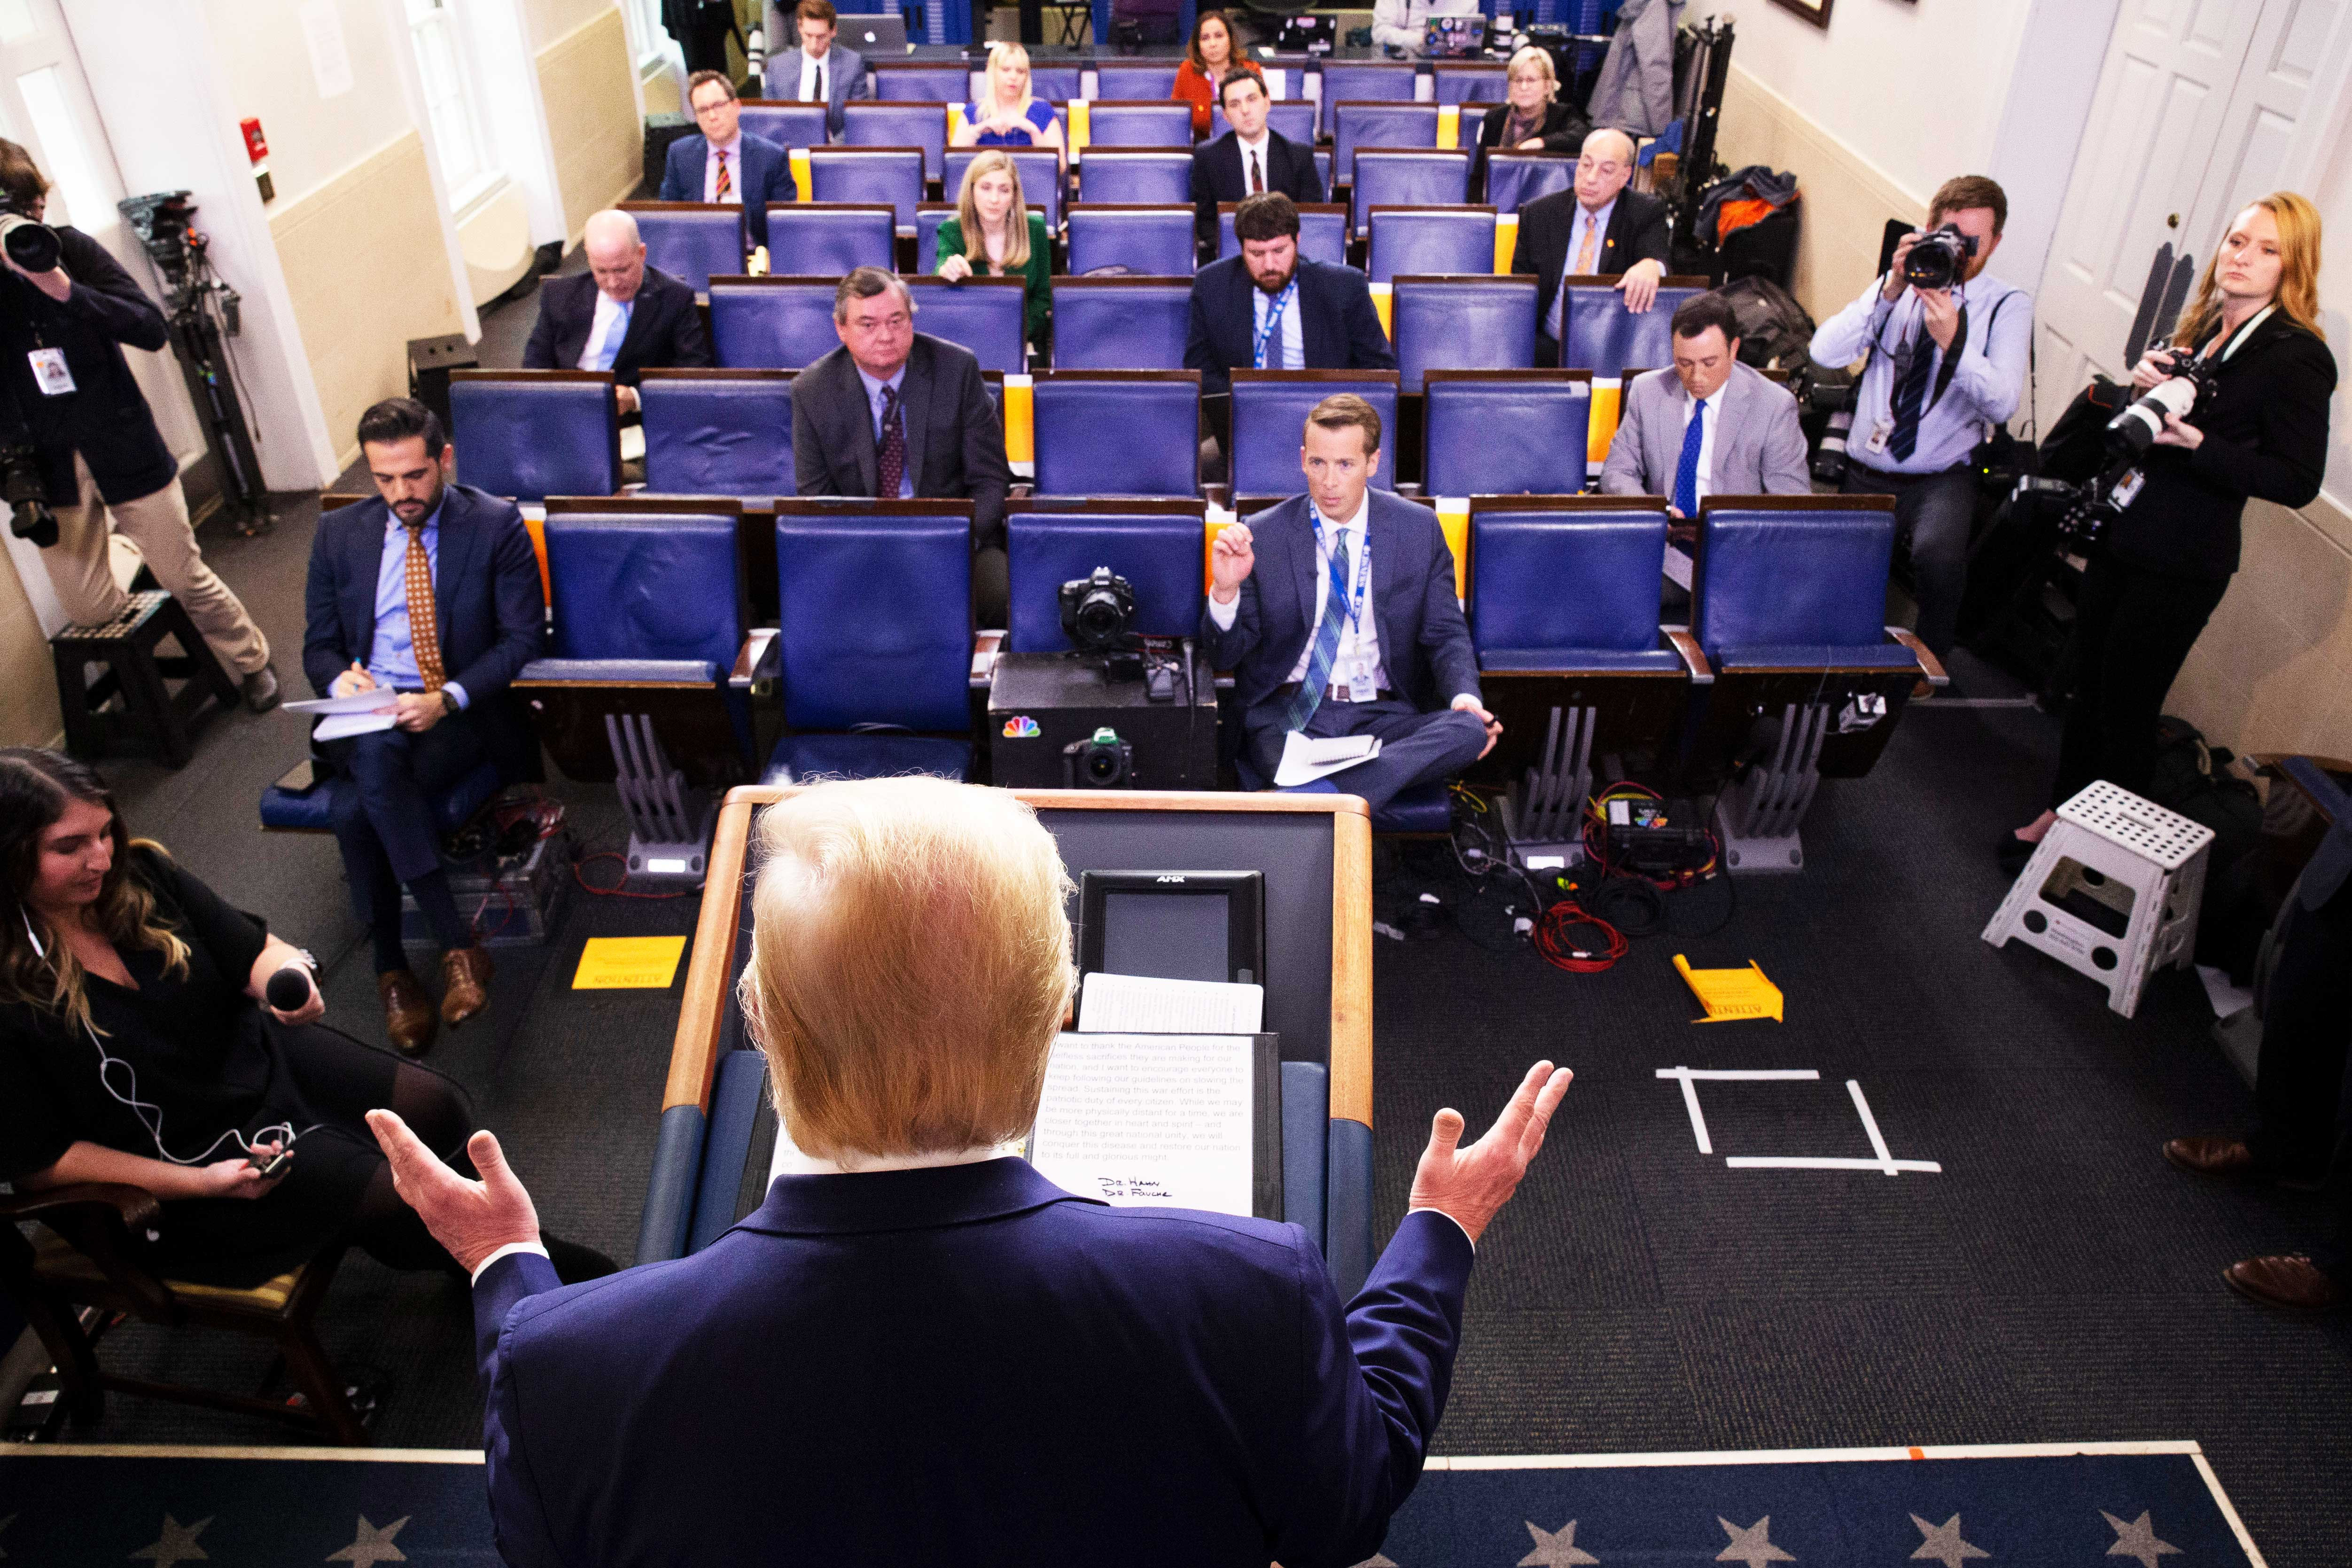 President Trump stands behind a podium while answering questions during a press briefing at the White House.